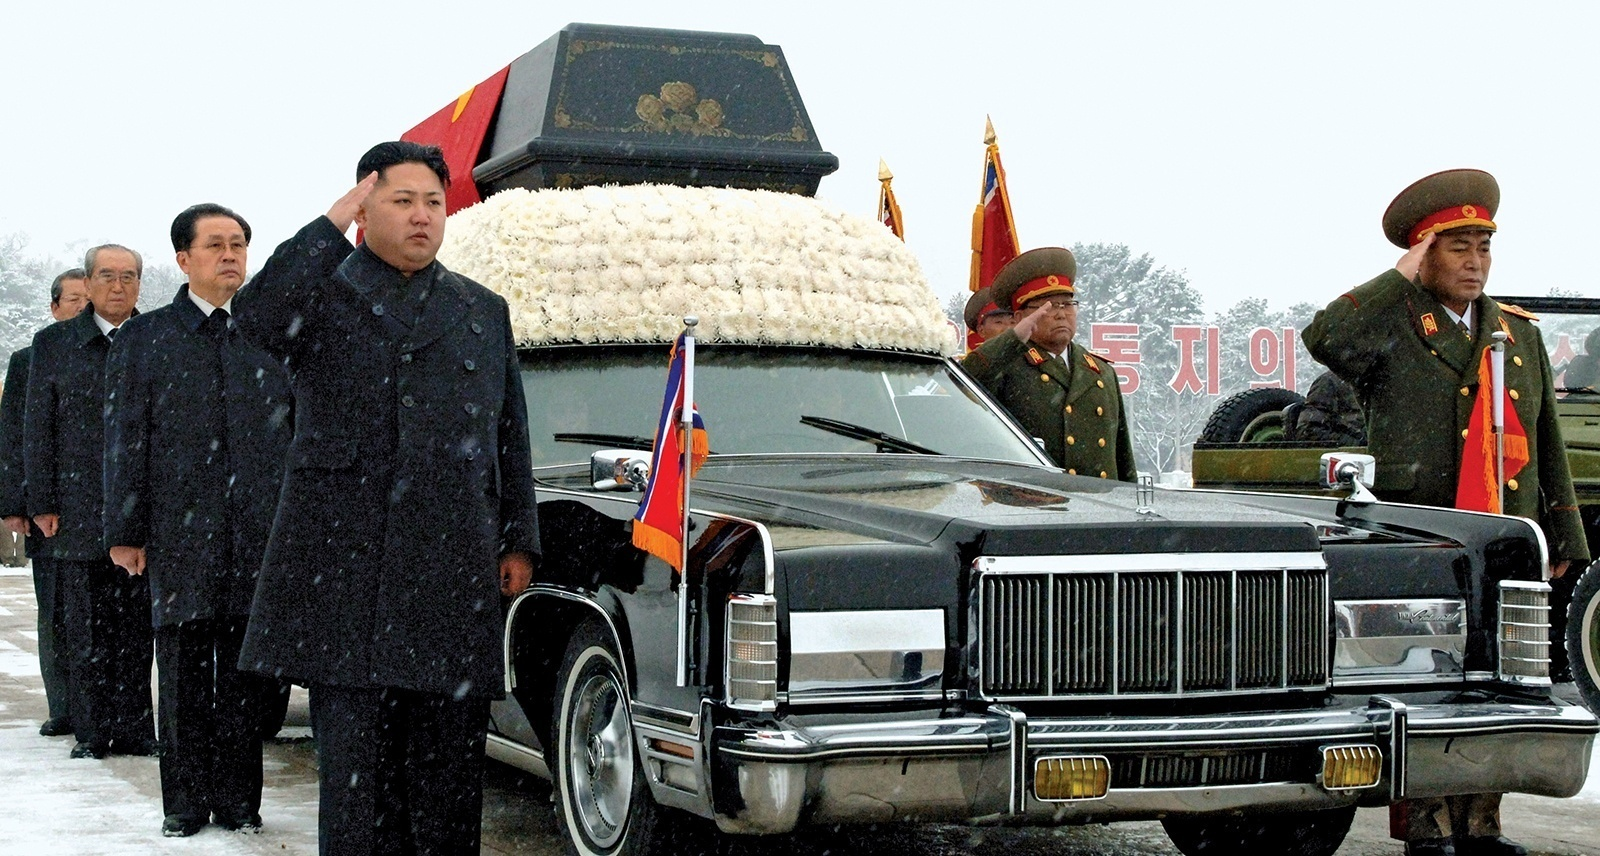 Nine years ago, Kim Jong Un took power. Here's what changed in 2020.